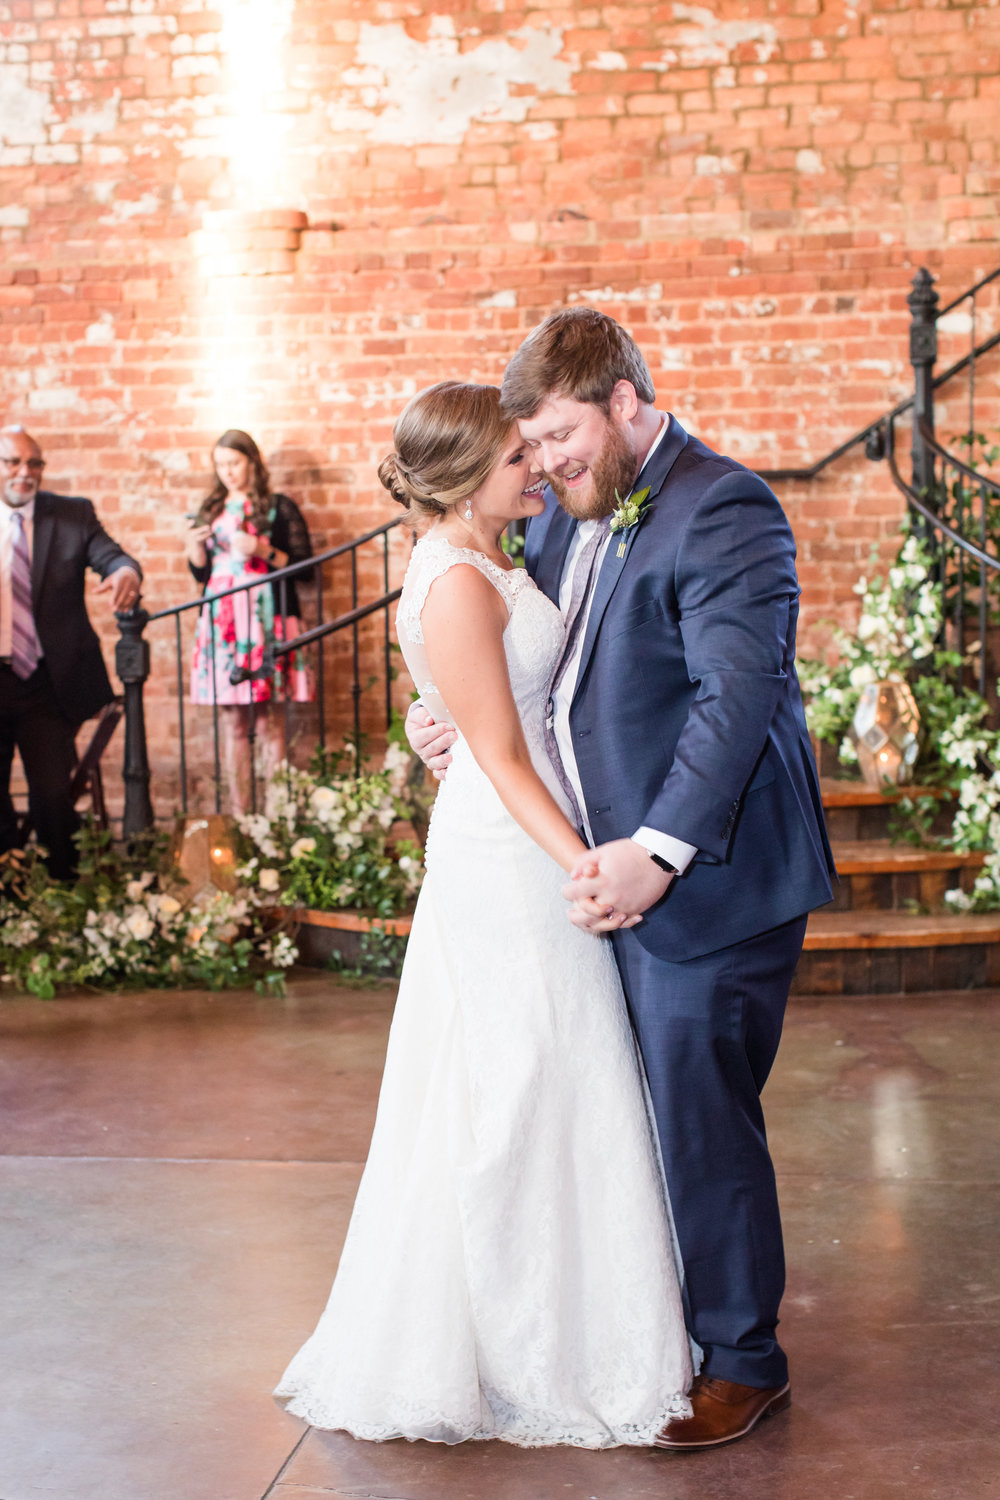 Wedding-DJ-Greenville-SC-Old Cigar-Warehouse-Megan-and-Ben103.jpg